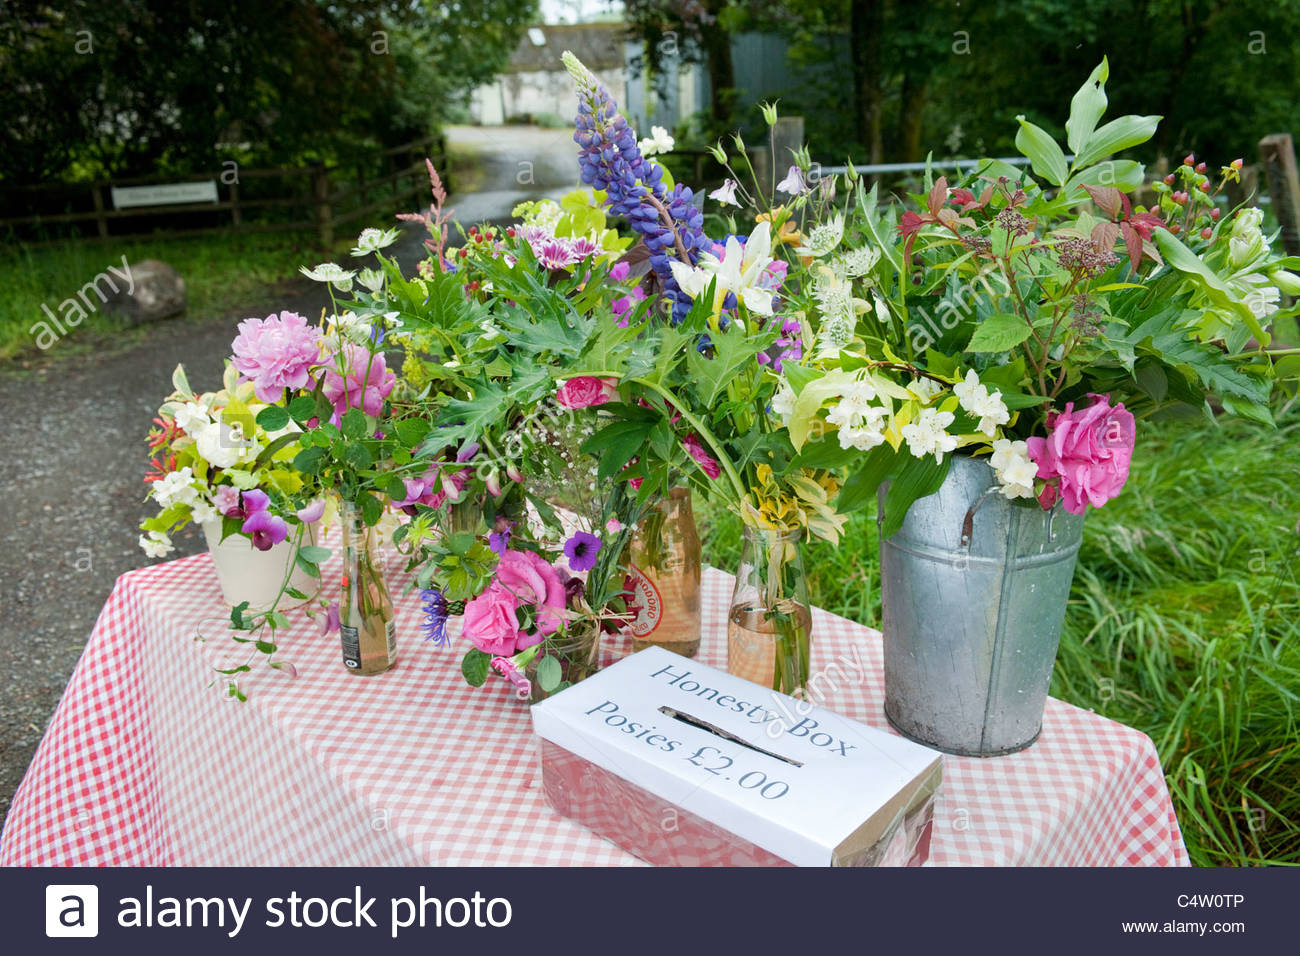 Posies of colourful cut flowers for sale on a roadside table with honesty  box - Stock Image